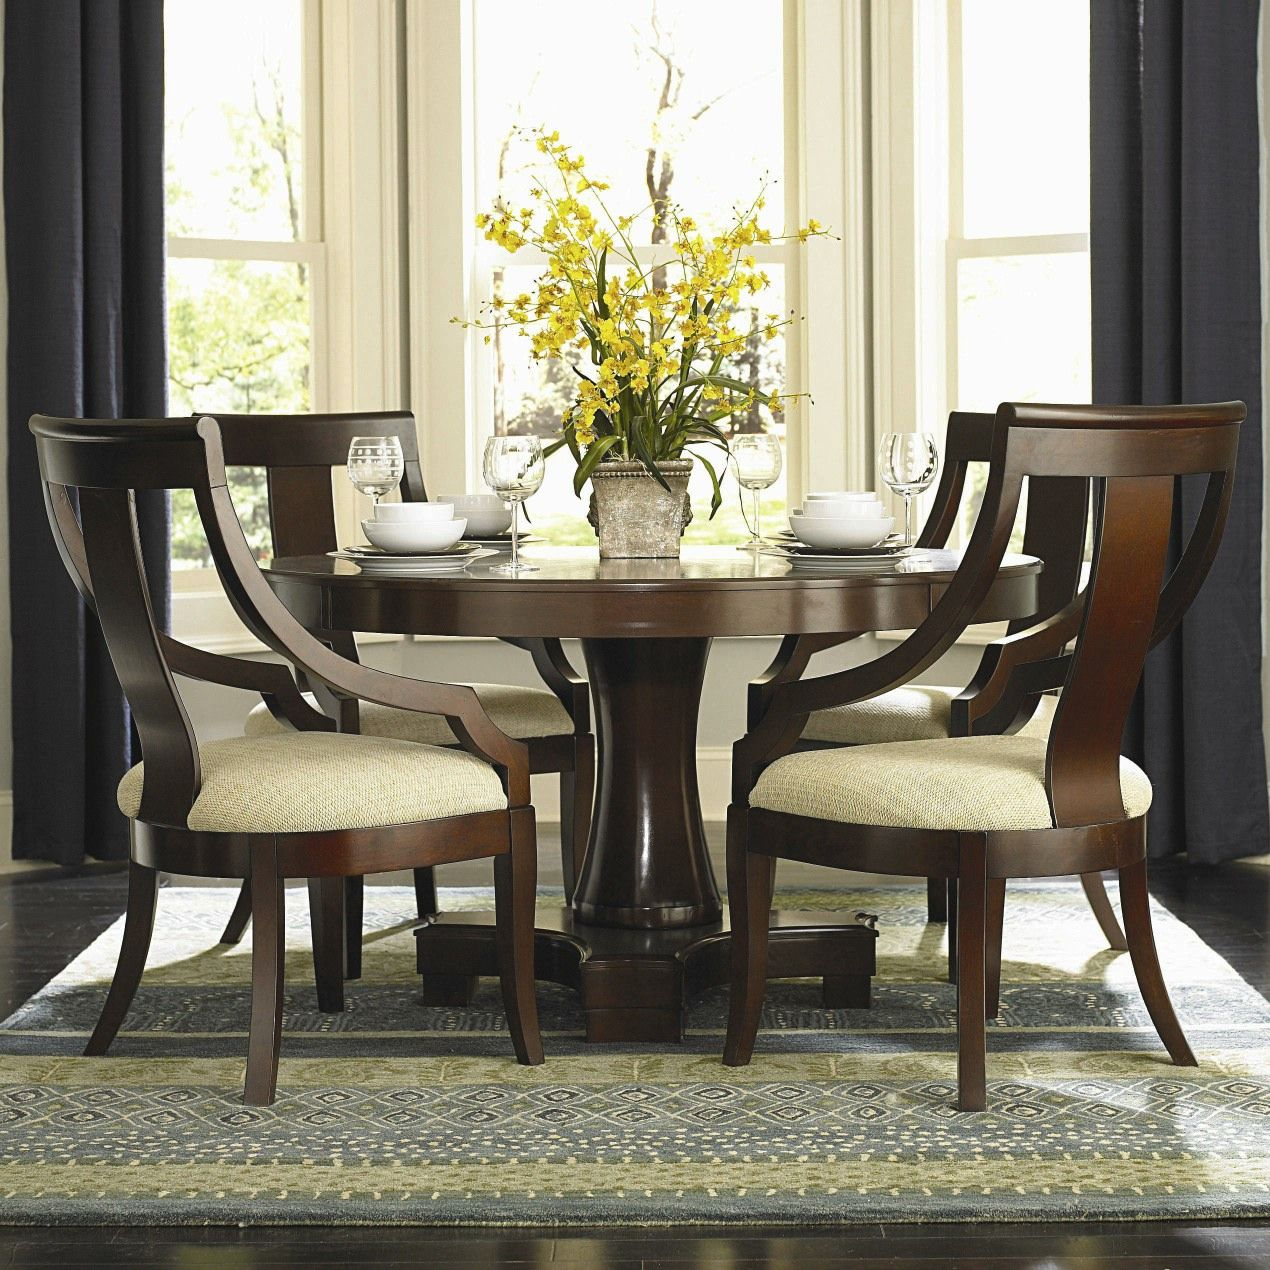 Dining room table and chairs westbridge model pinterest dining